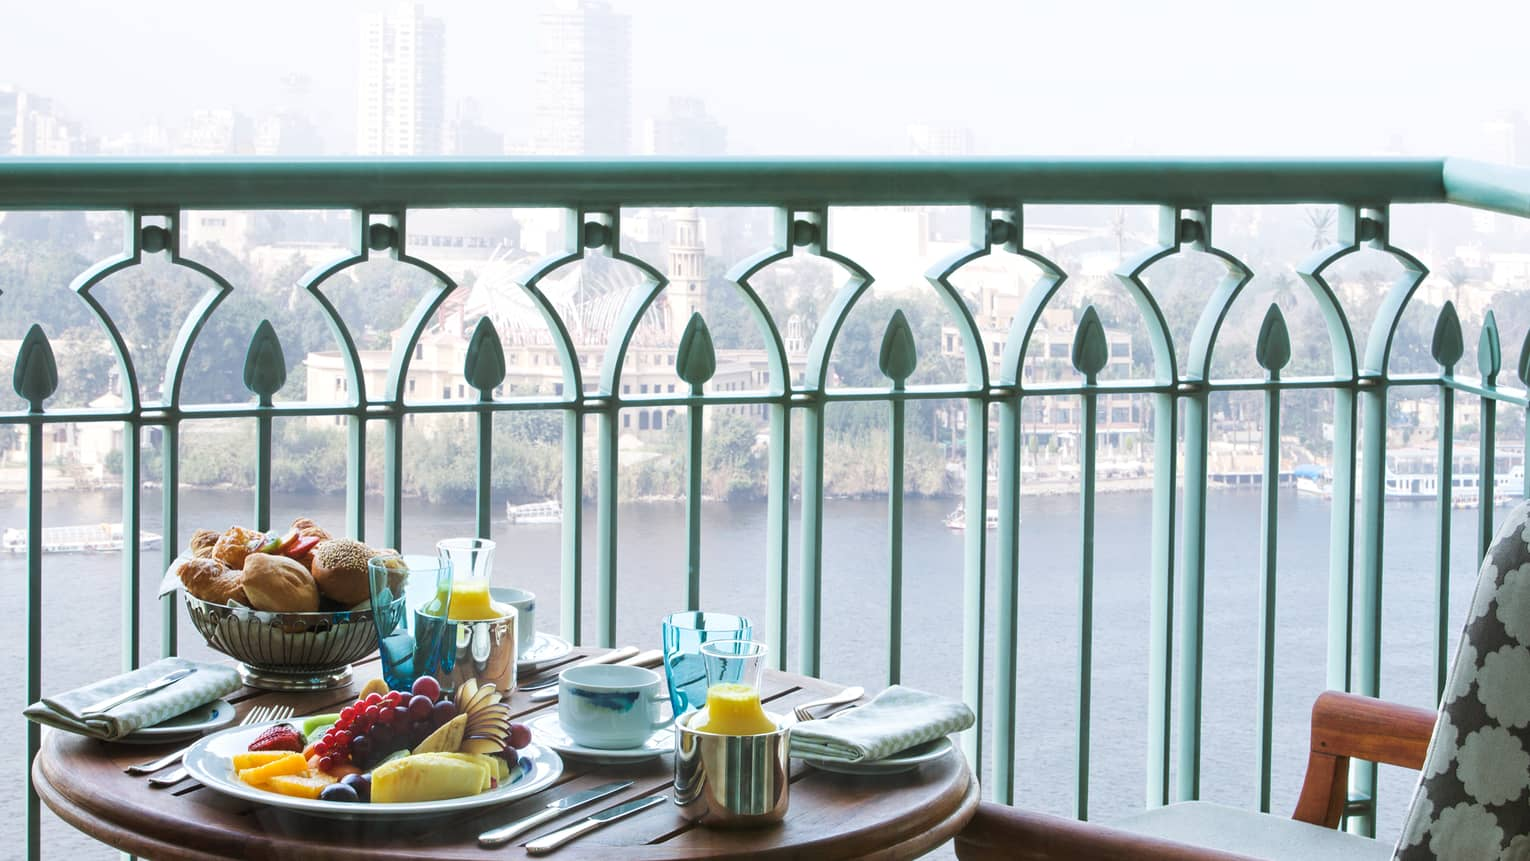 Close-up of patio breakfast table with fresh fruit, bread and juice, beside blue iron balcony overlooking river